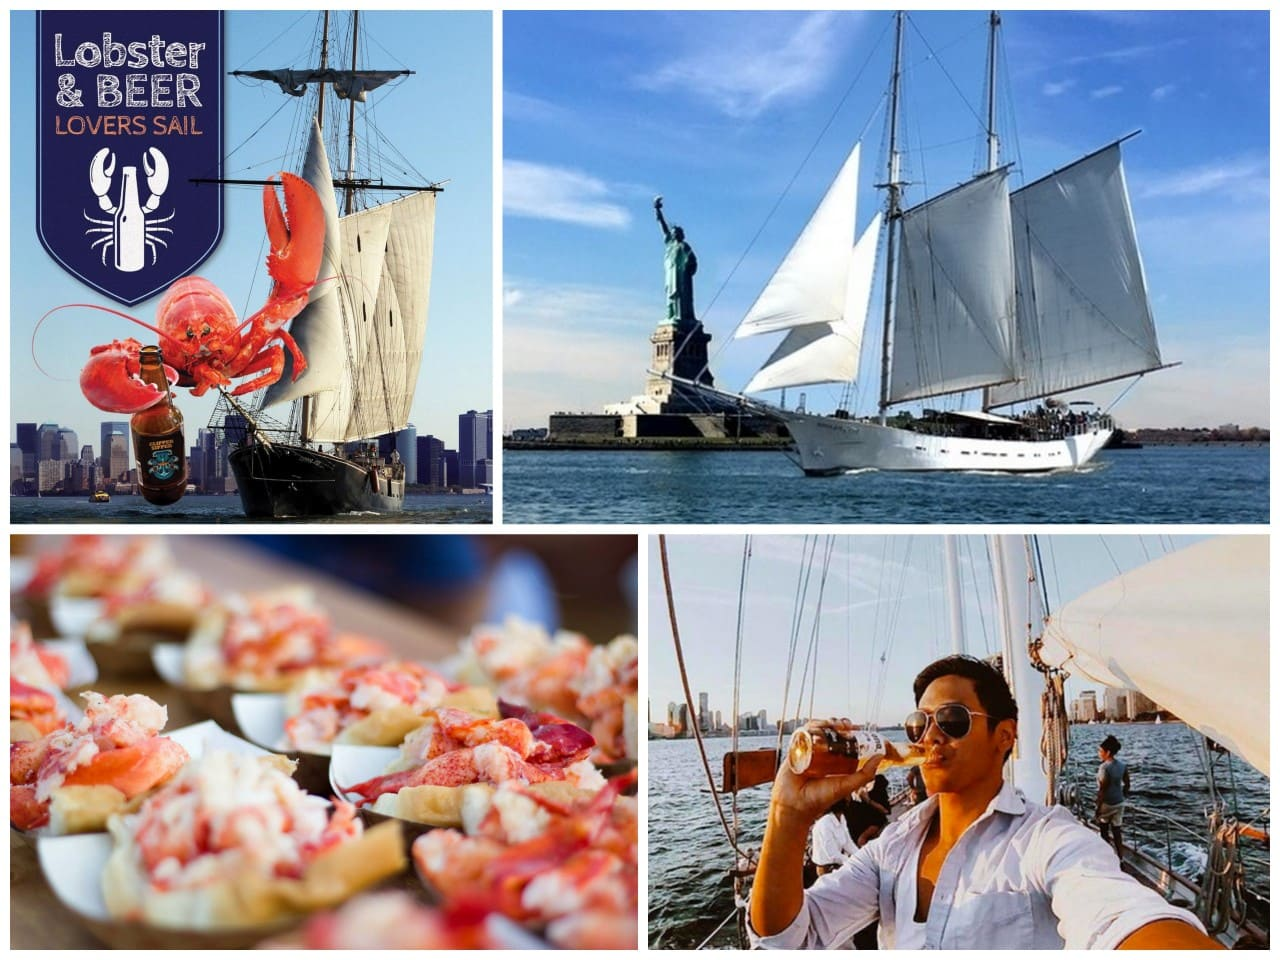 Clipper City Lobster & Beer Lovers Sail